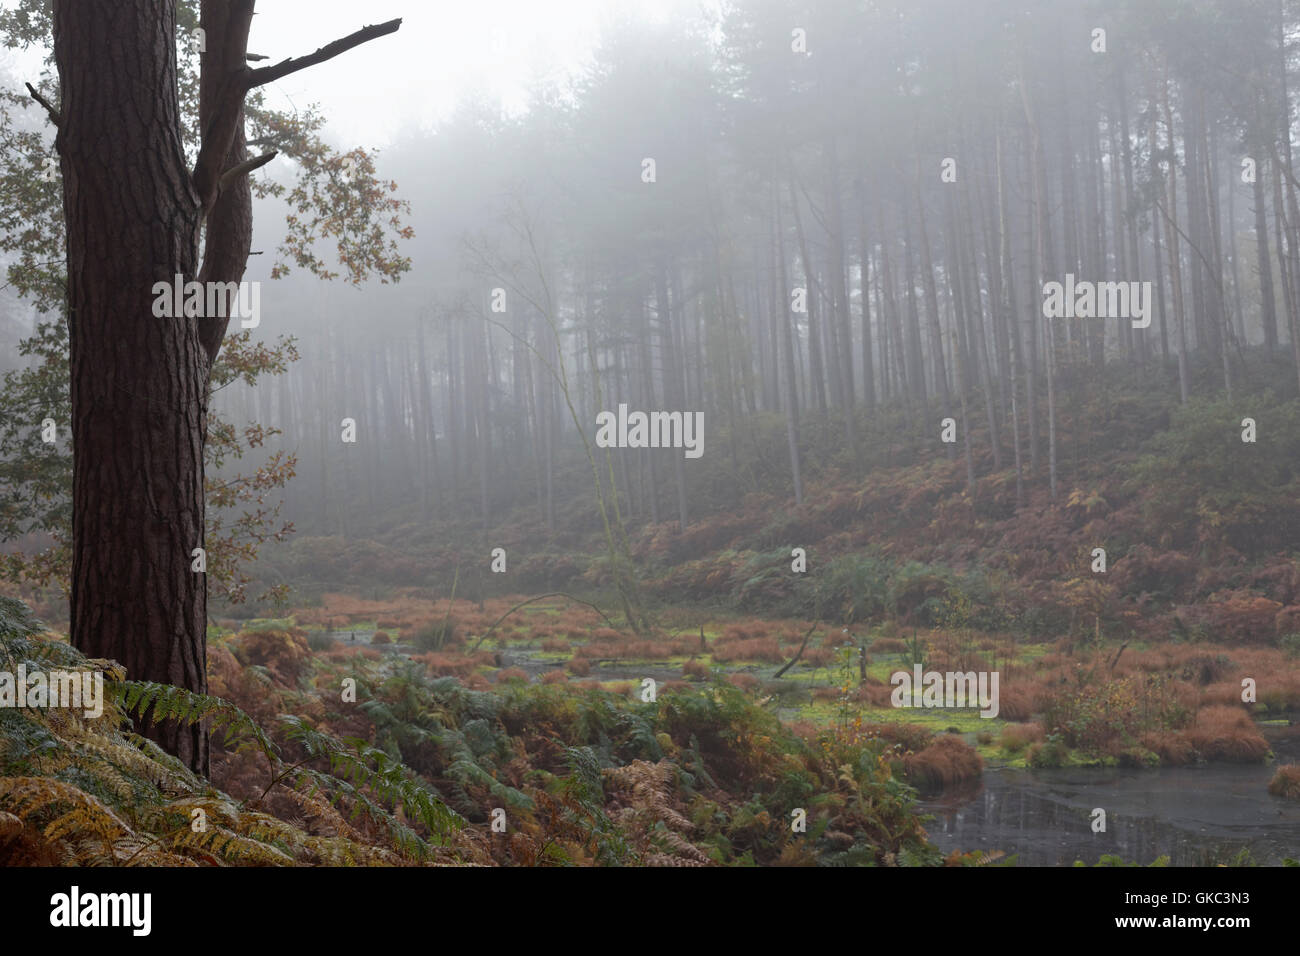 landscape, composition, trees, water, Delamere Forest, Cheshire, England, UK, - Stock Image